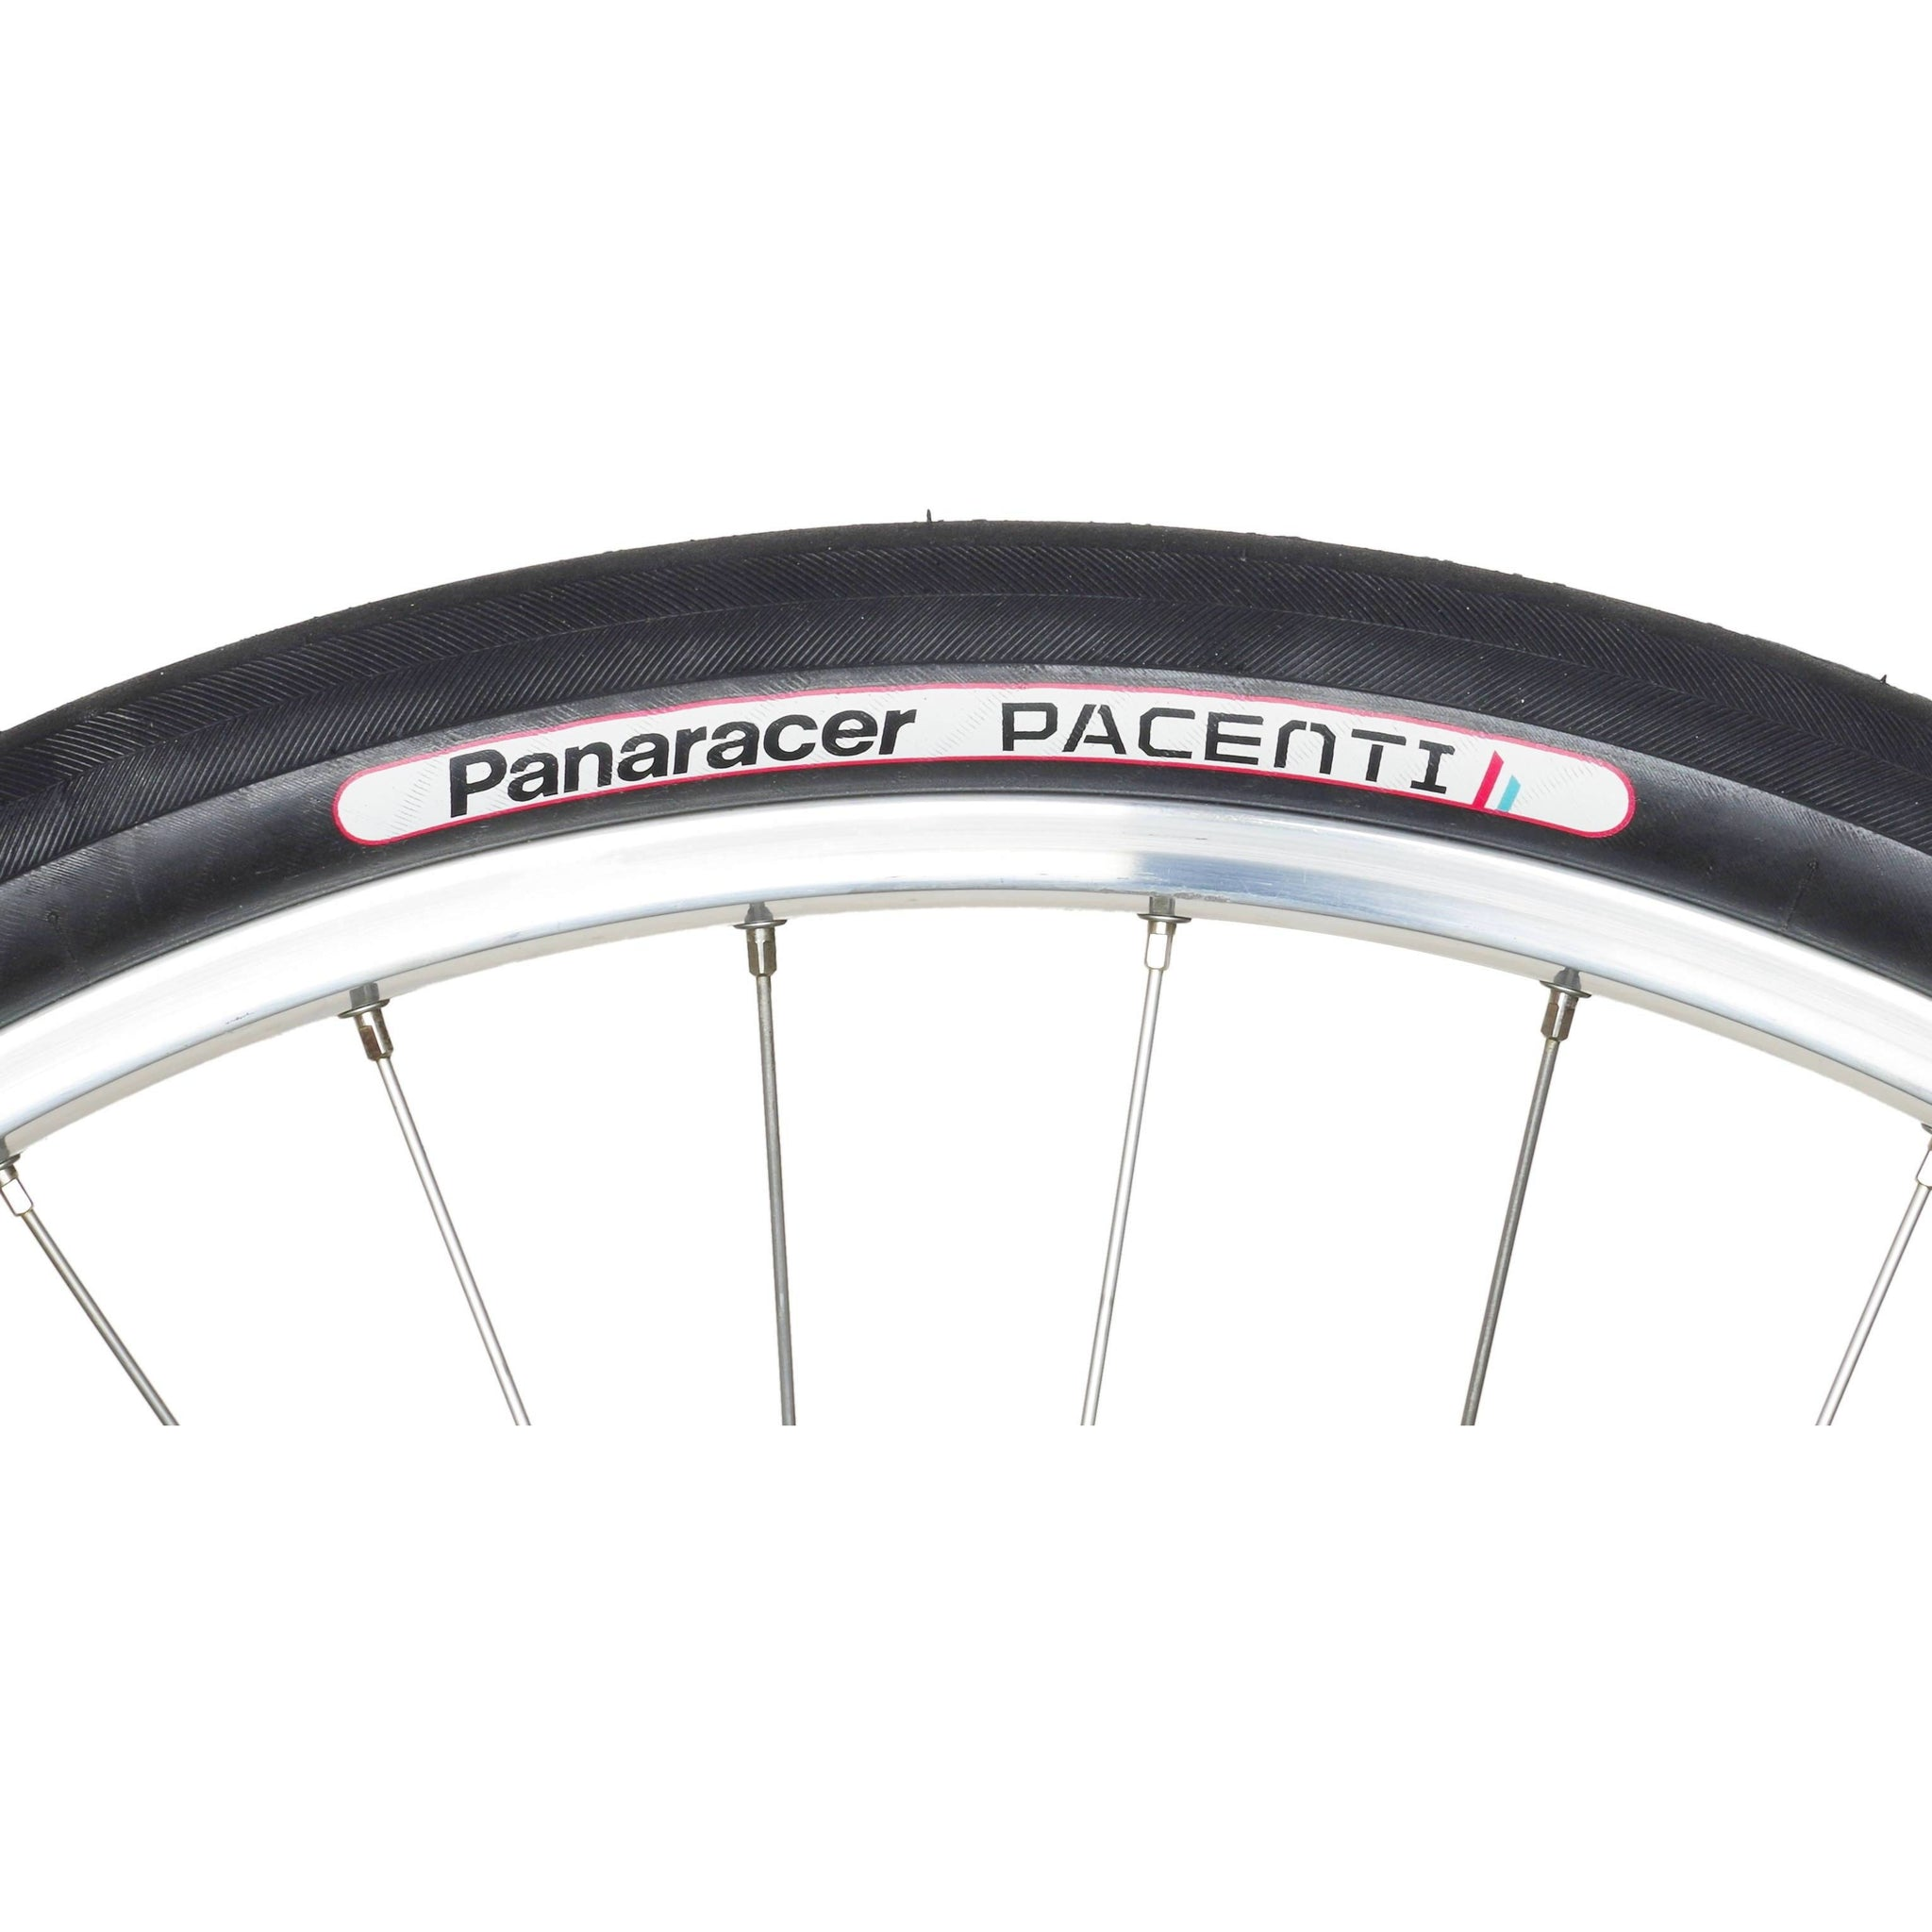 Pacenti Pari-Moto 650bx42 mm Tires